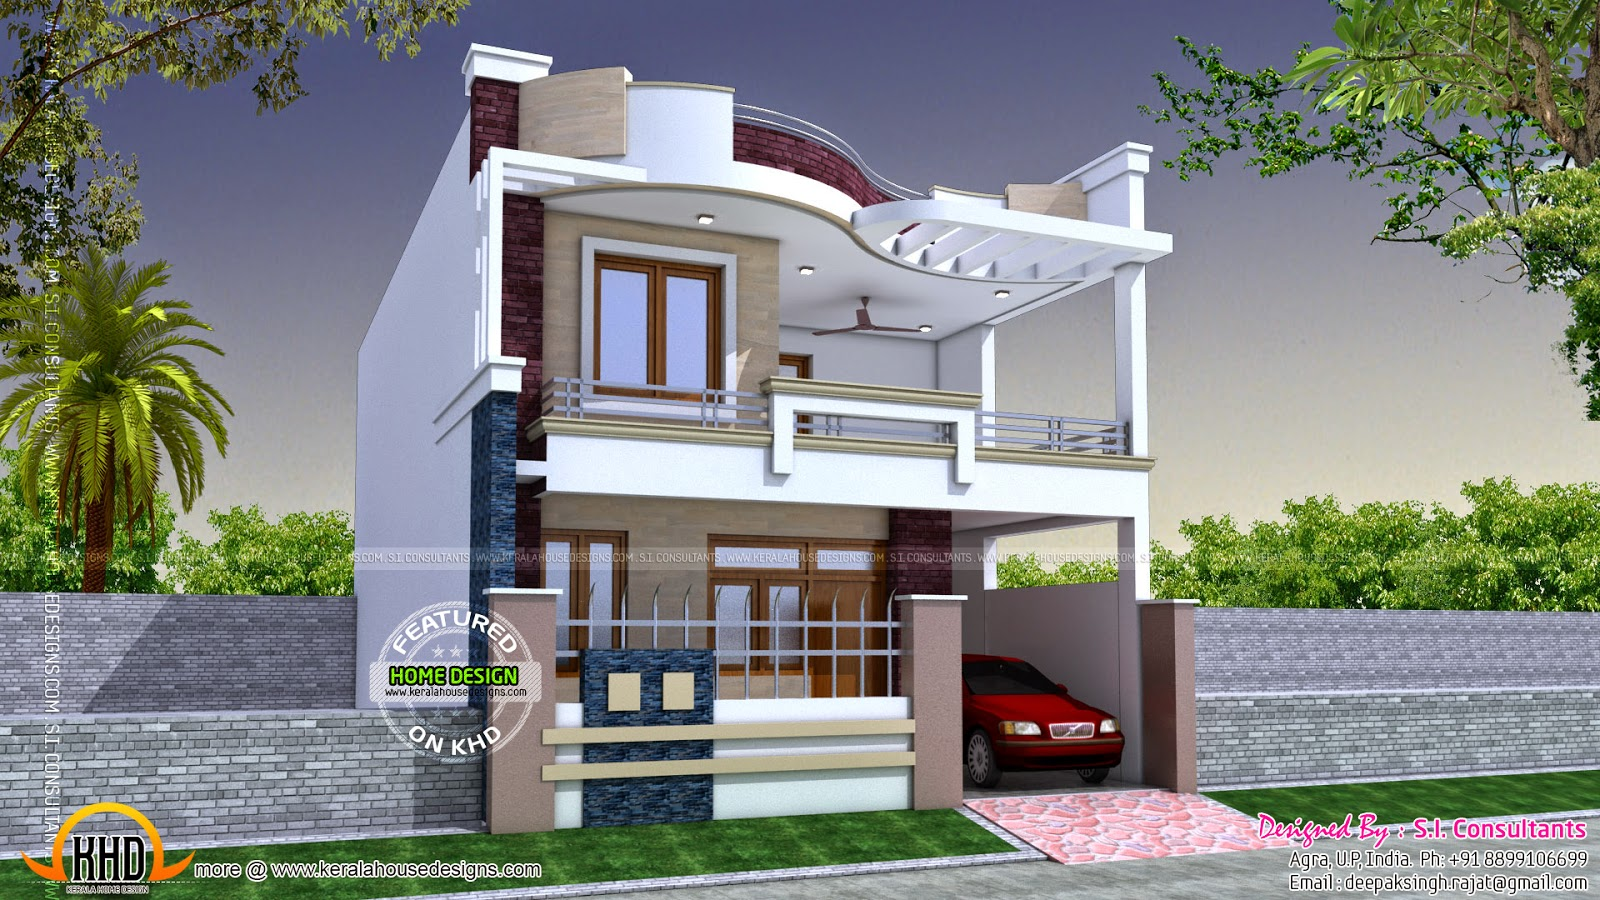 Modern indian home design kerala home design and floor plans for In ground home designs